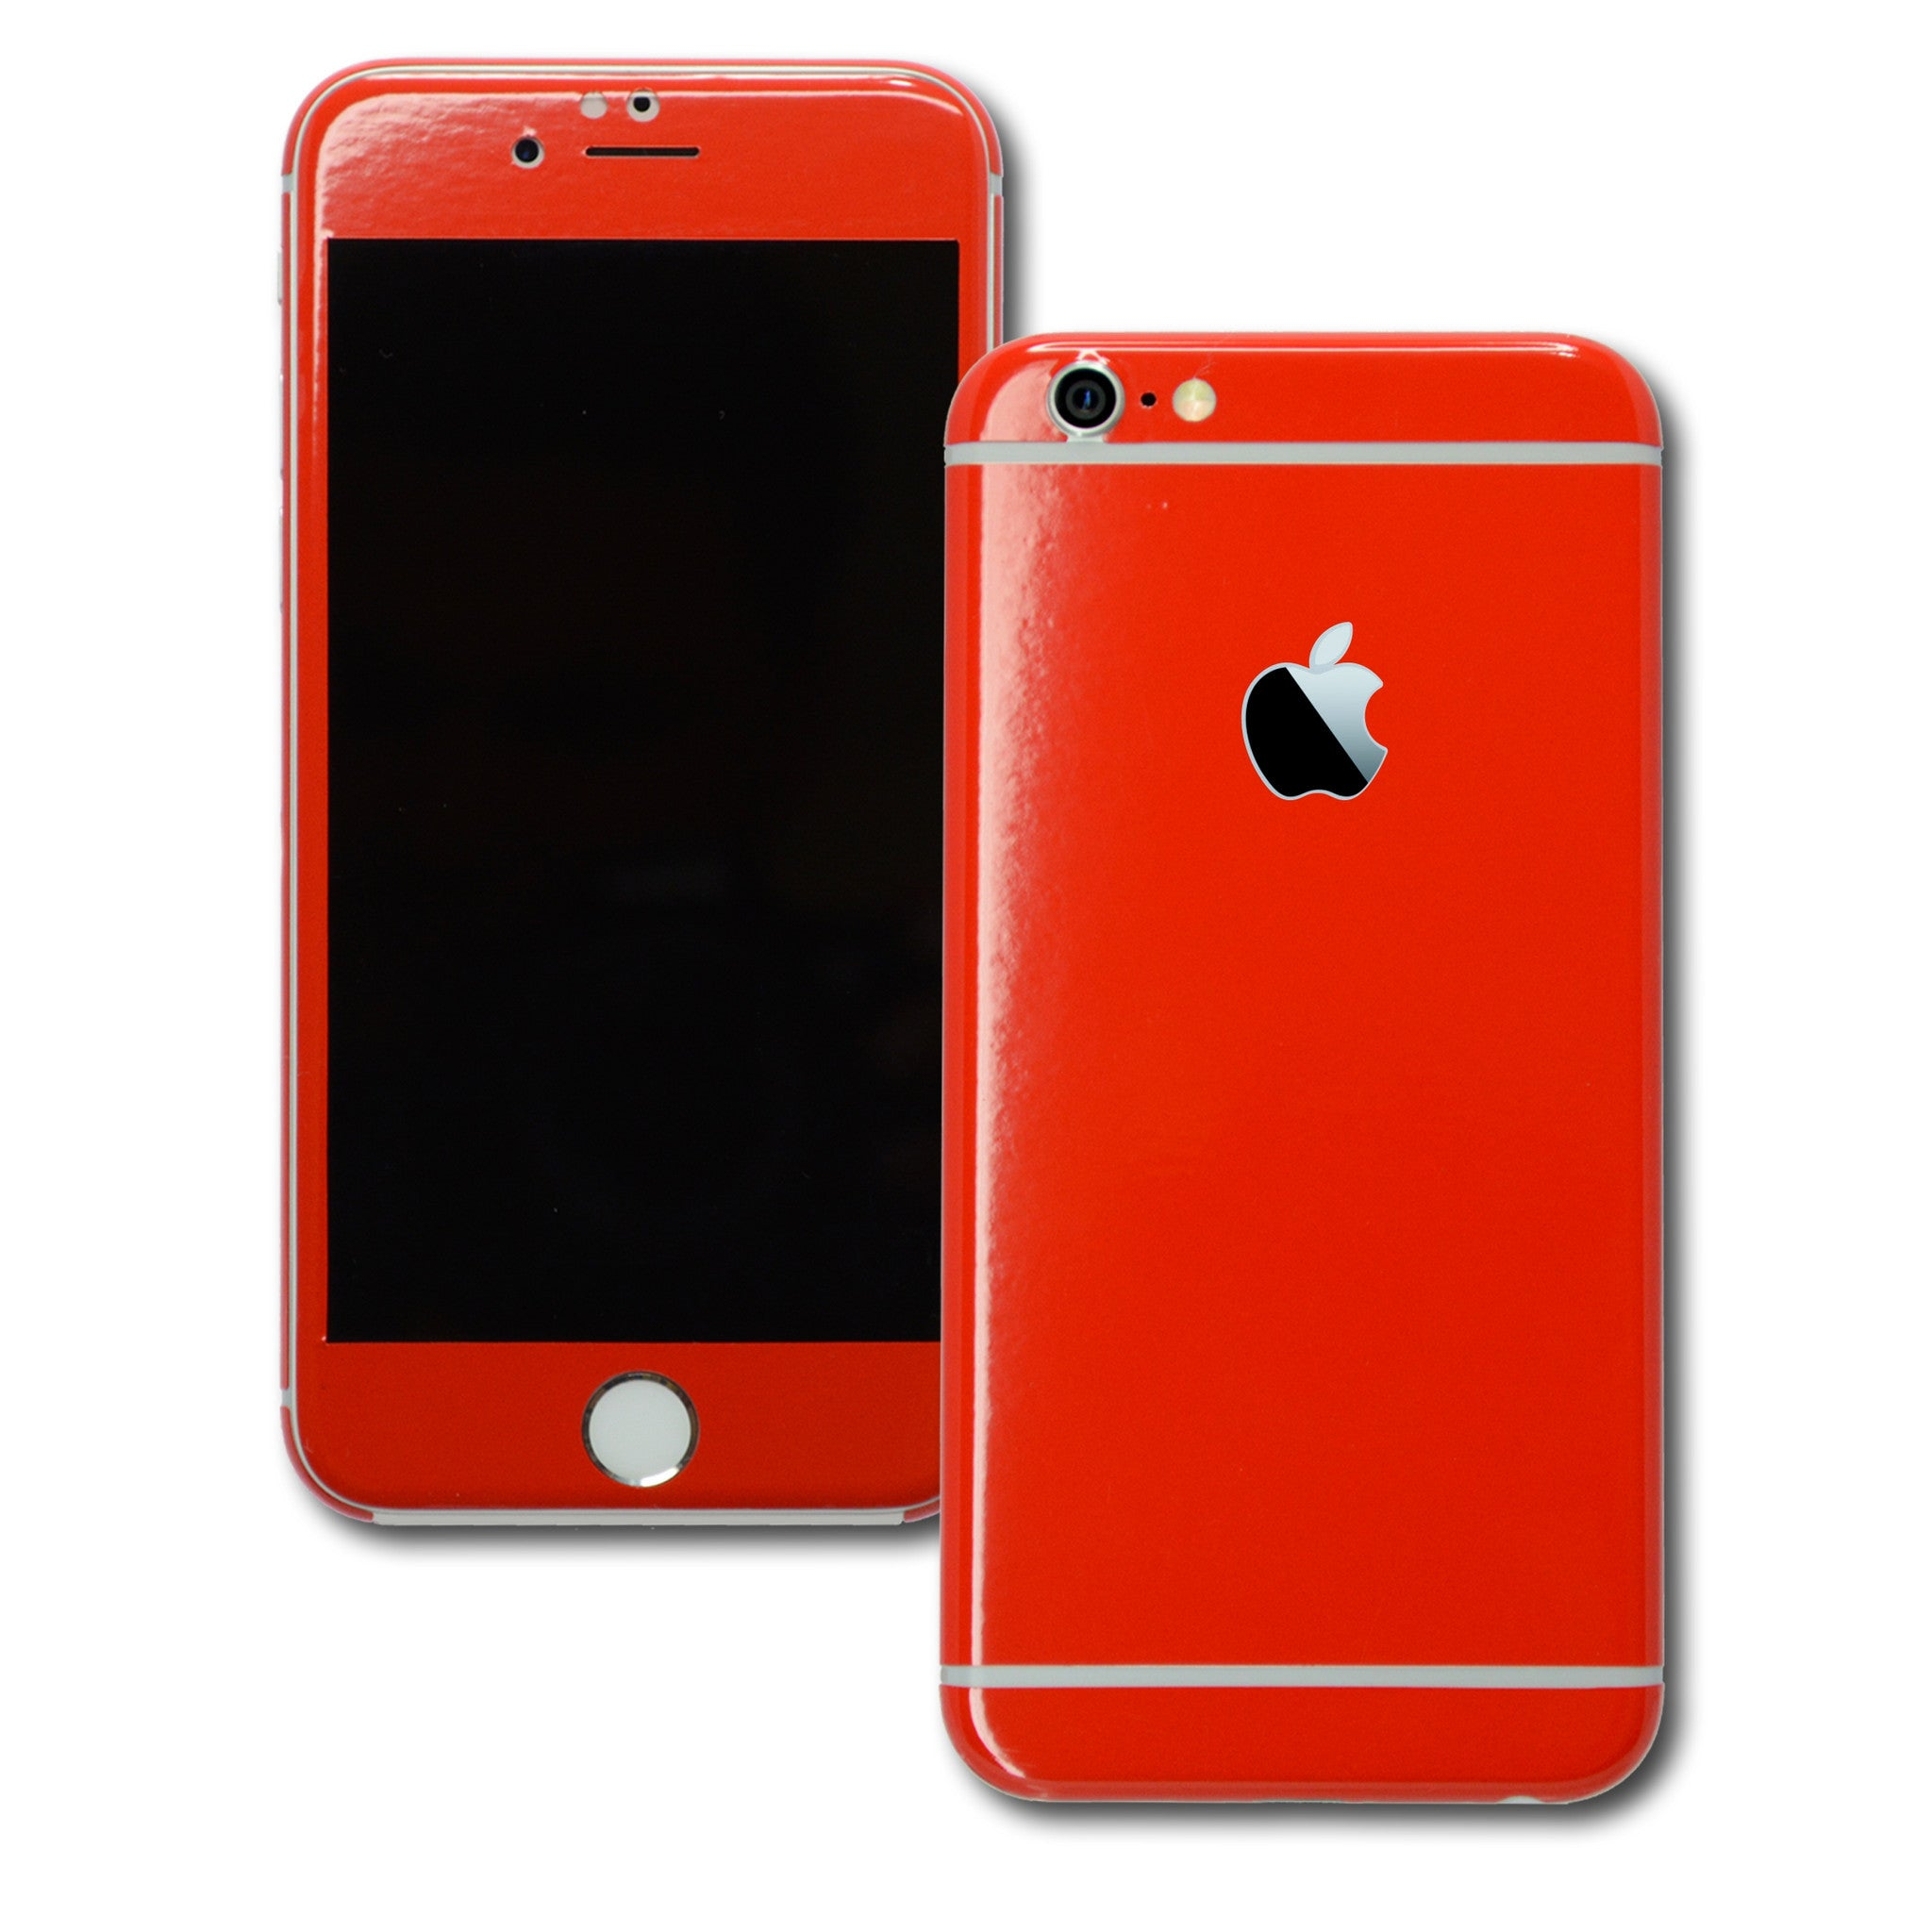 iPhone 6 Colorful GLOSS GLOSSY Bright Red Skin Wrap Sticker Cover Protector Decal by EasySkinz